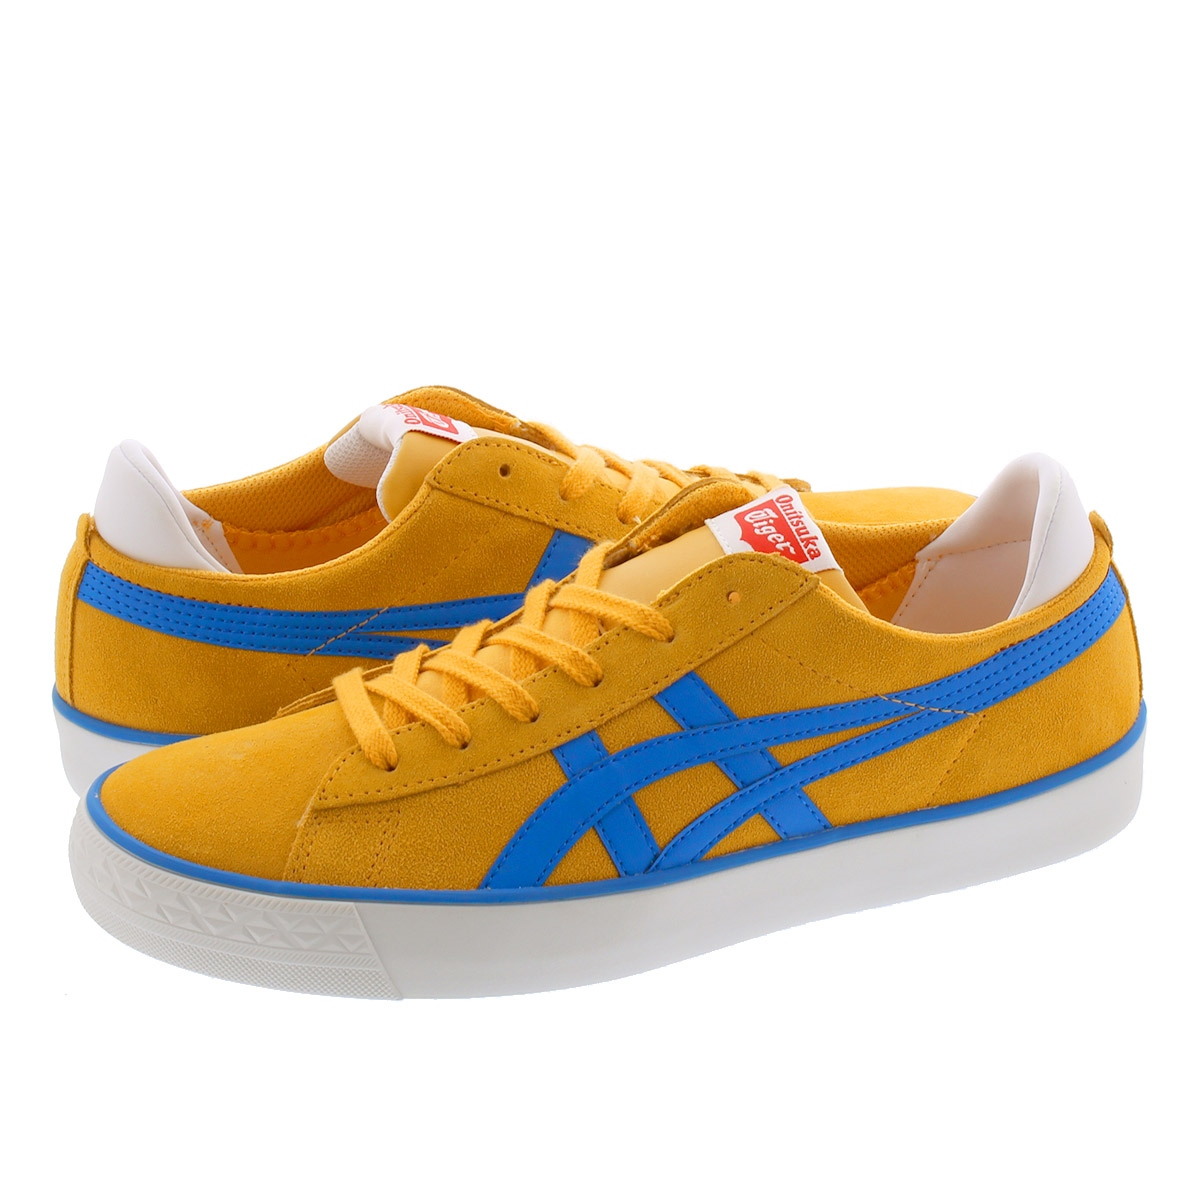 Onitsuka Tiger FABRE BL-S 2.0 オニツカタイガー ファブレ BL-S 2.0 TIGER YELLOW/DIRECTOIRE BLUE 1183a525-751